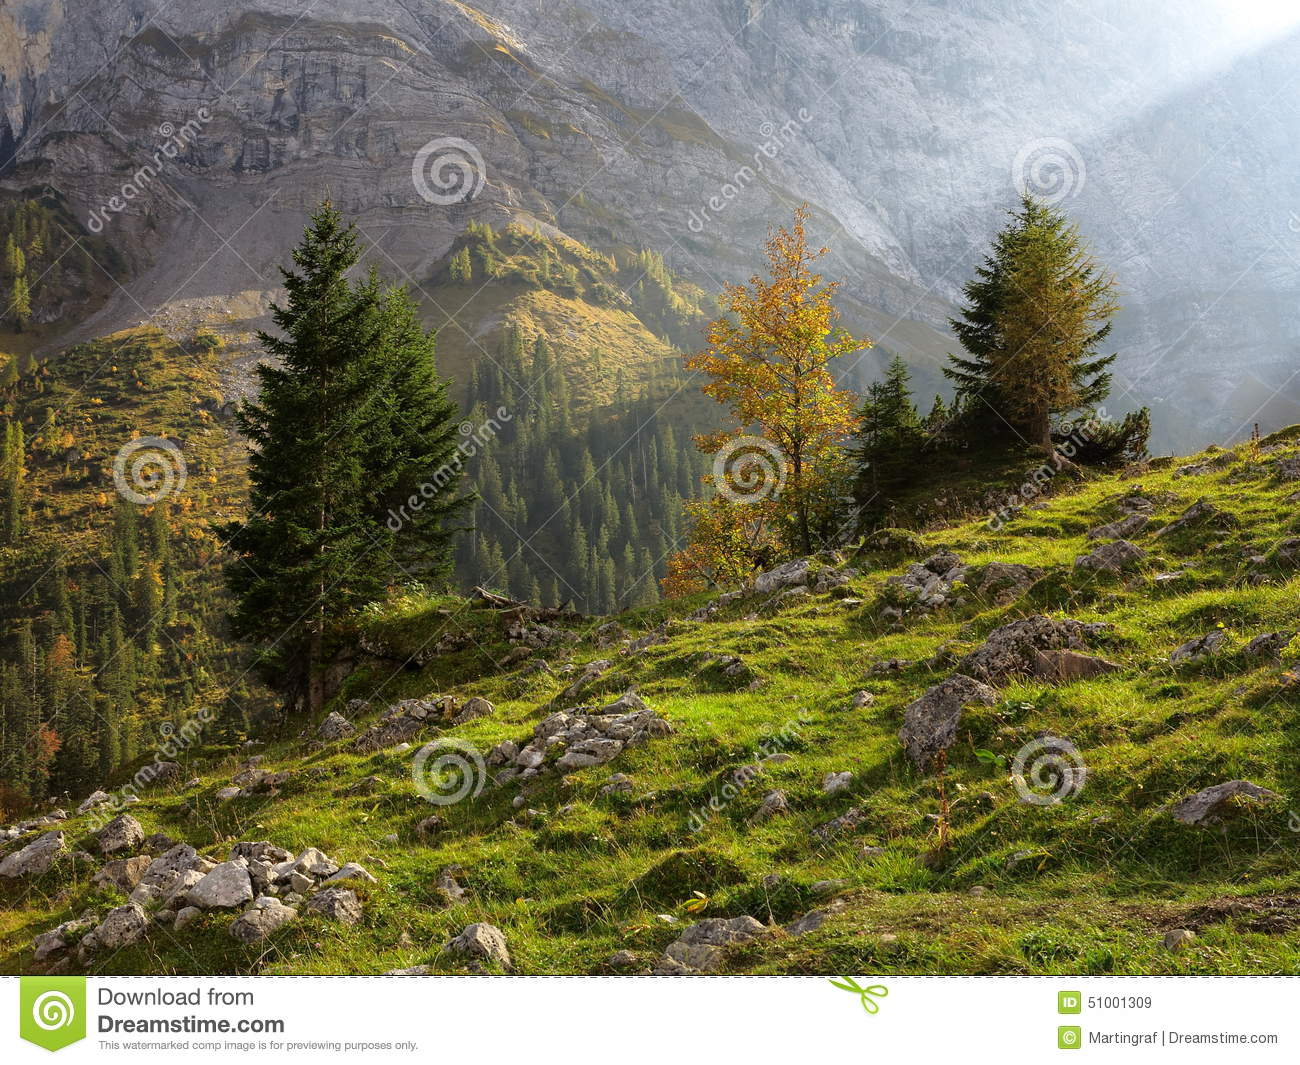 Sunbeam in harsh mountain valley by fall colors